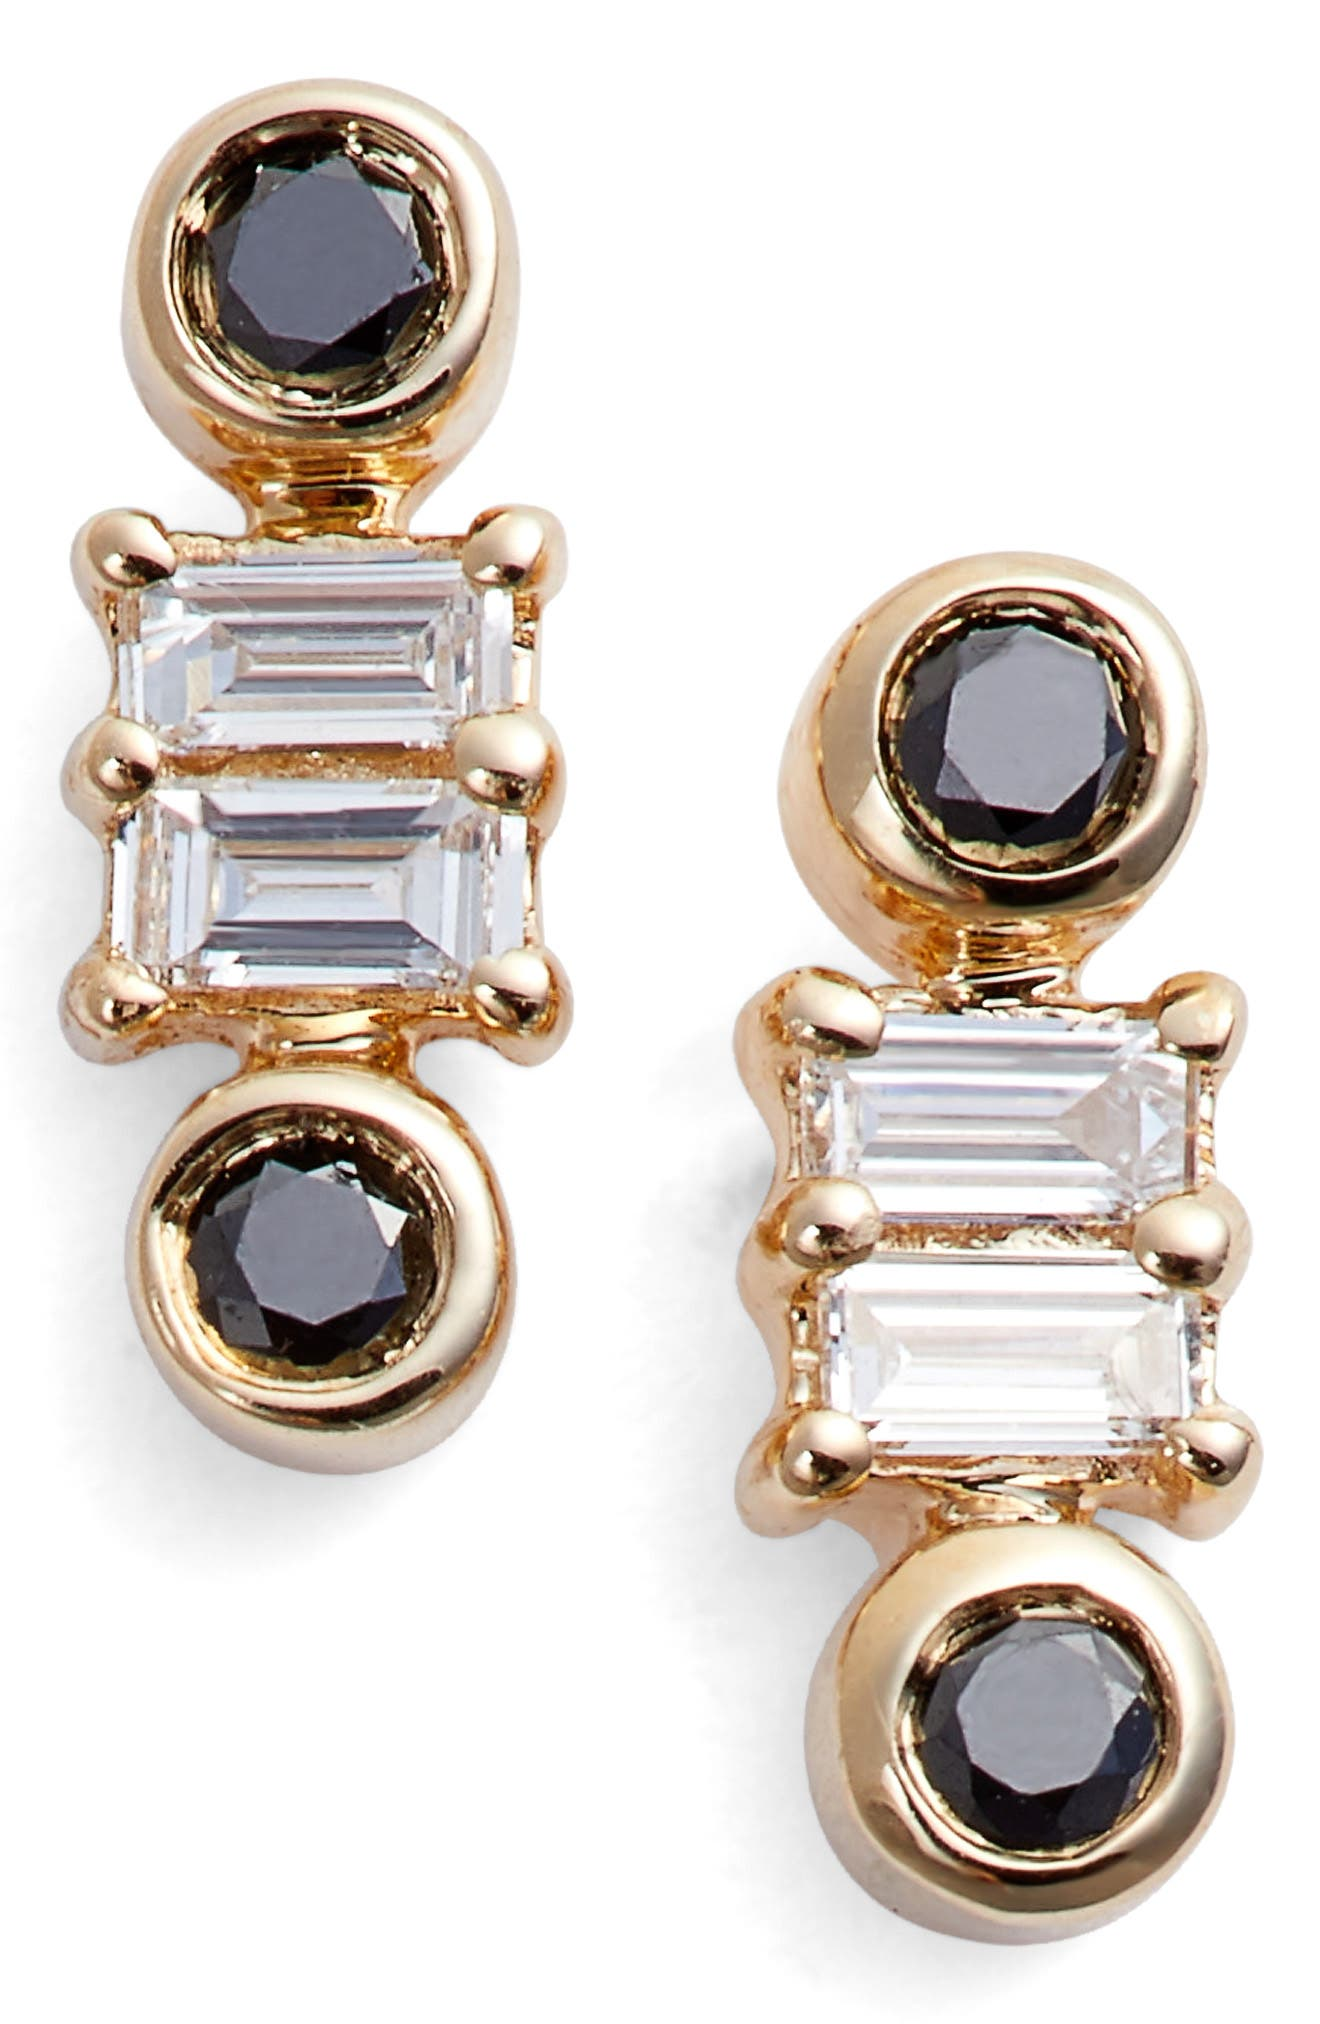 Dana Rebecca Designs Sadie Stud Earrings